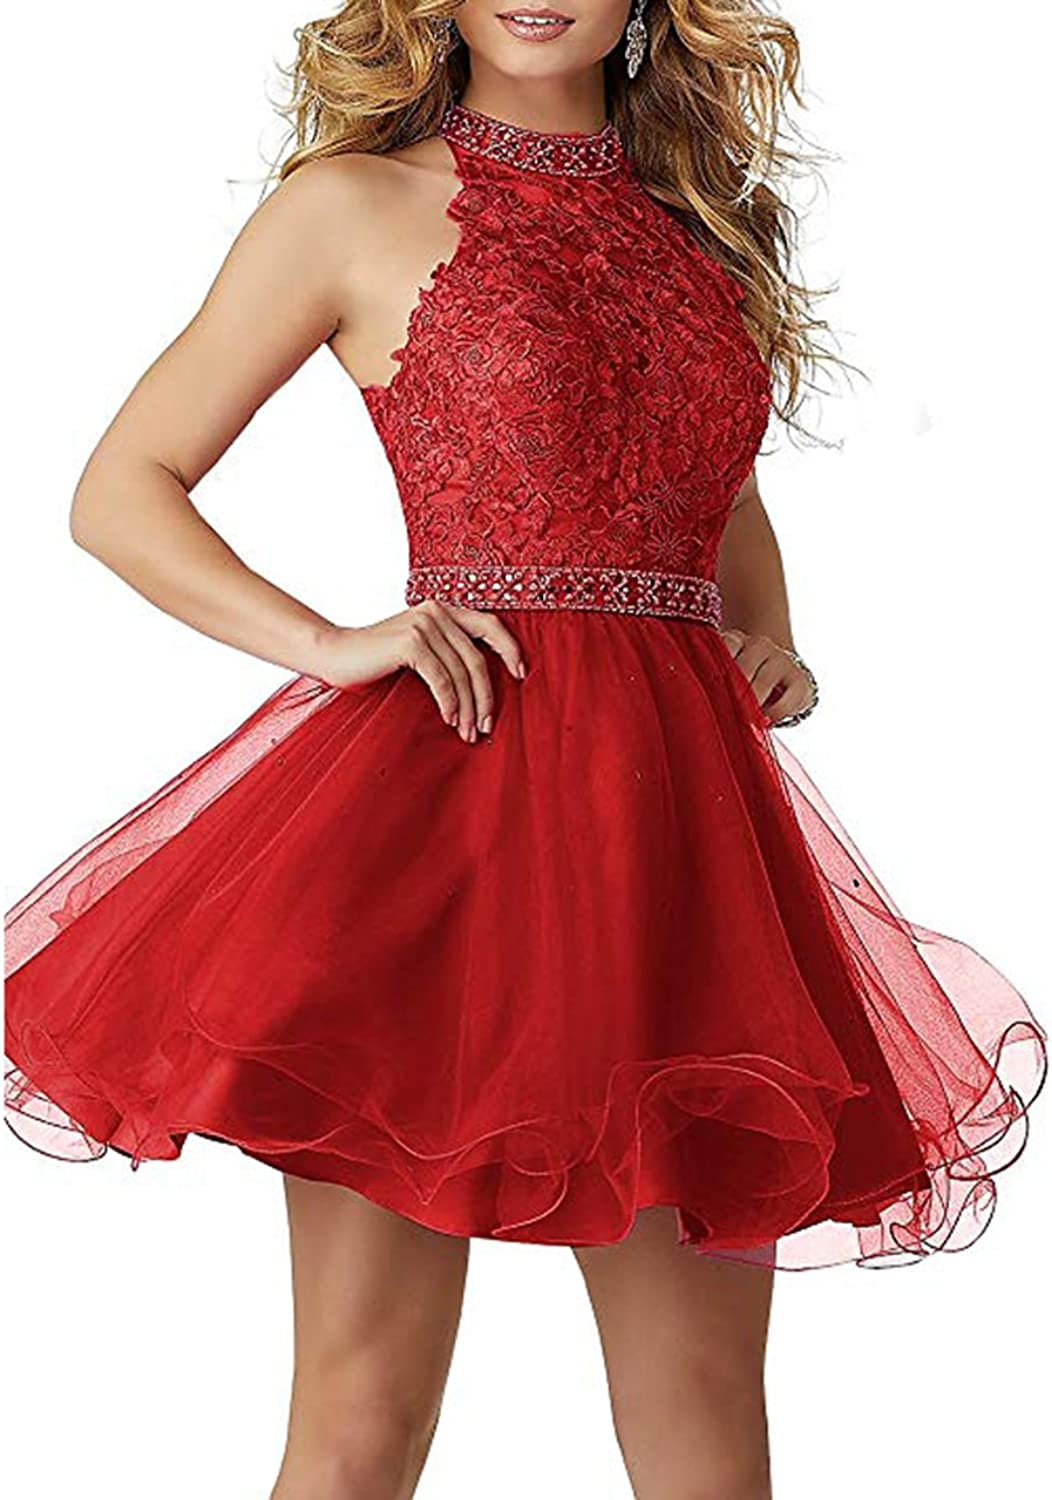 Alilith.Z Sexy High Neck Lace Beaded Crystal Short Homecoming Cocktail Dresses Halter Prom Party Dresses for Women